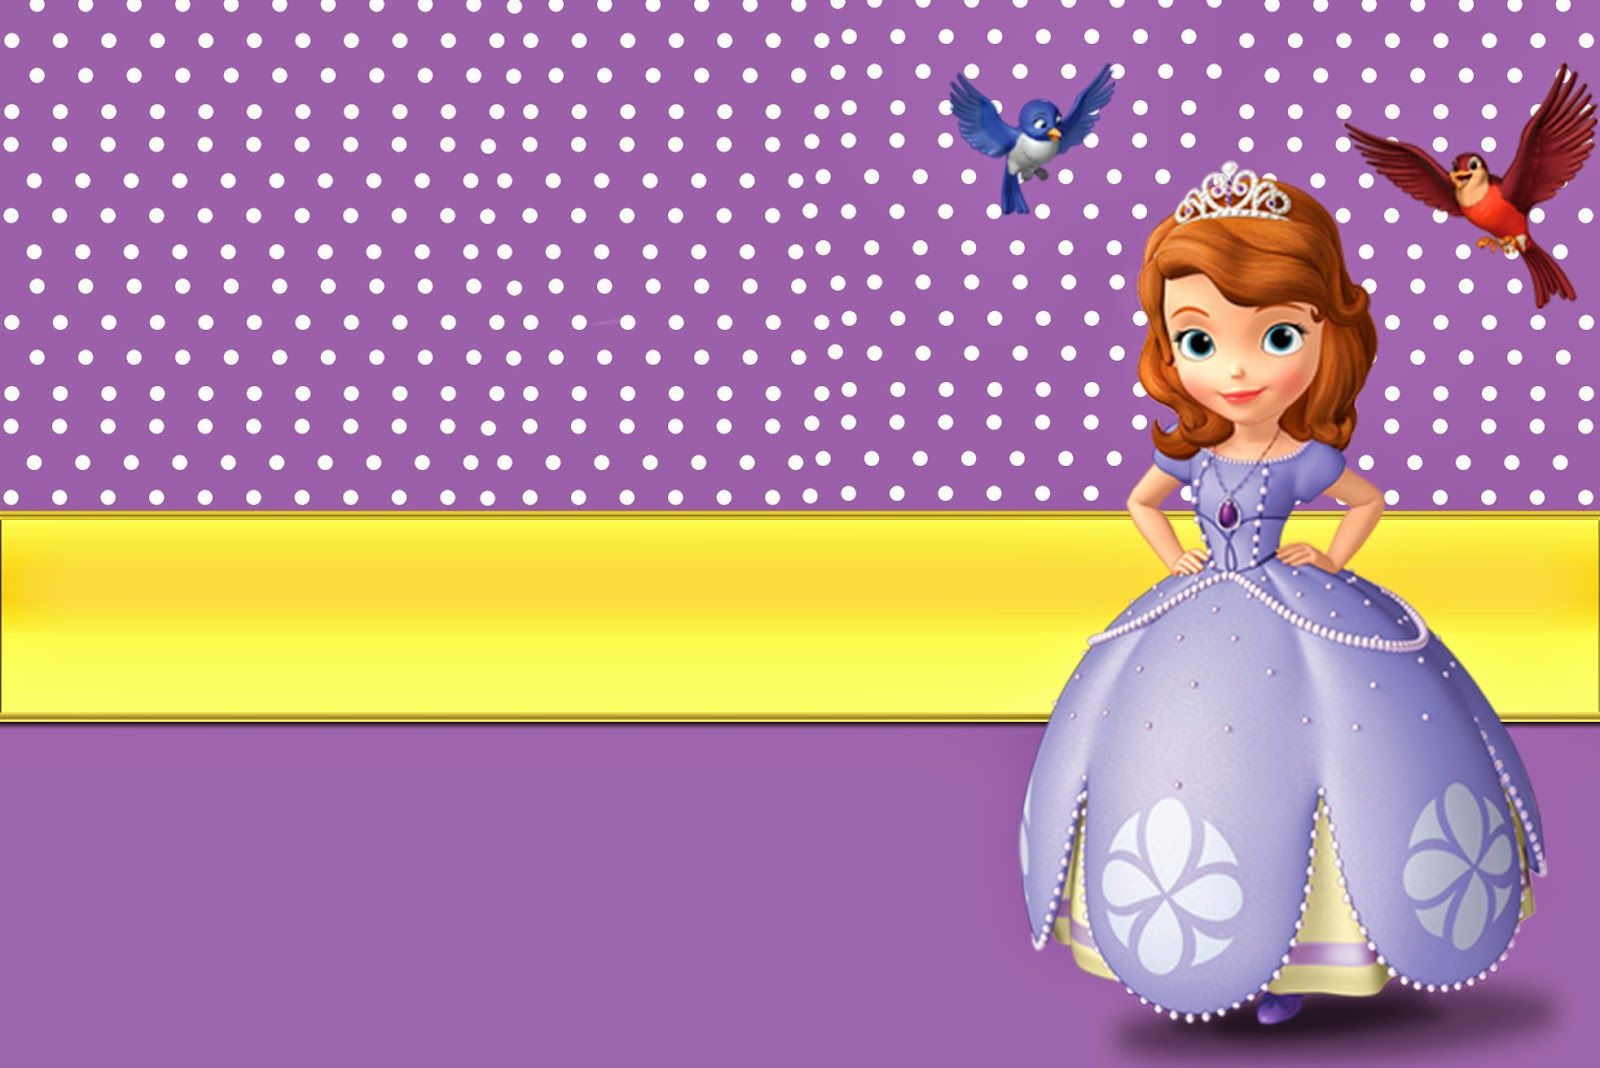 Printable Invitations Cards Or Photo Frames Princess Sofia